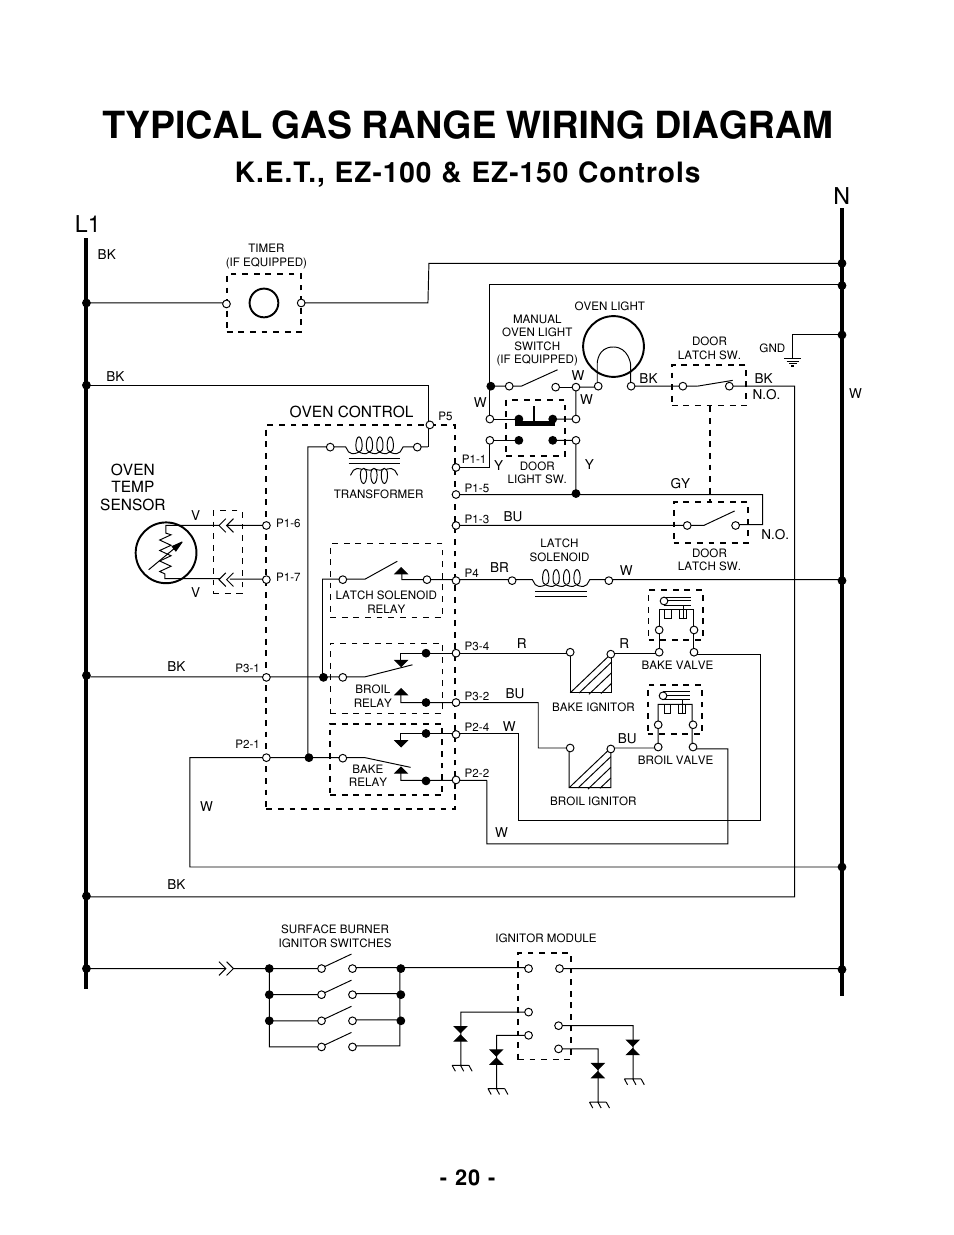 whirlpool-465-page22 Ez Wiring Diagram on msd ignition diagram, go kart diagram, ez go diagram, holley diagram, ford diagram, 36 volt club car diagram, ignition switch diagram, hydraulic motor diagram, pneumatic cylinder diagram, ezgo fuel pump diagram, yamaha golf cart battery diagram, club car 36v batteries diagram, ezgo battery installation diagram, 12v battery charger circuit diagram, ezgo 36 volt battery diagram, ezgo powerwise charger diagram, at&t u-verse installation diagram, edelbrock diagram, vintage air diagram, model t coil diagram,